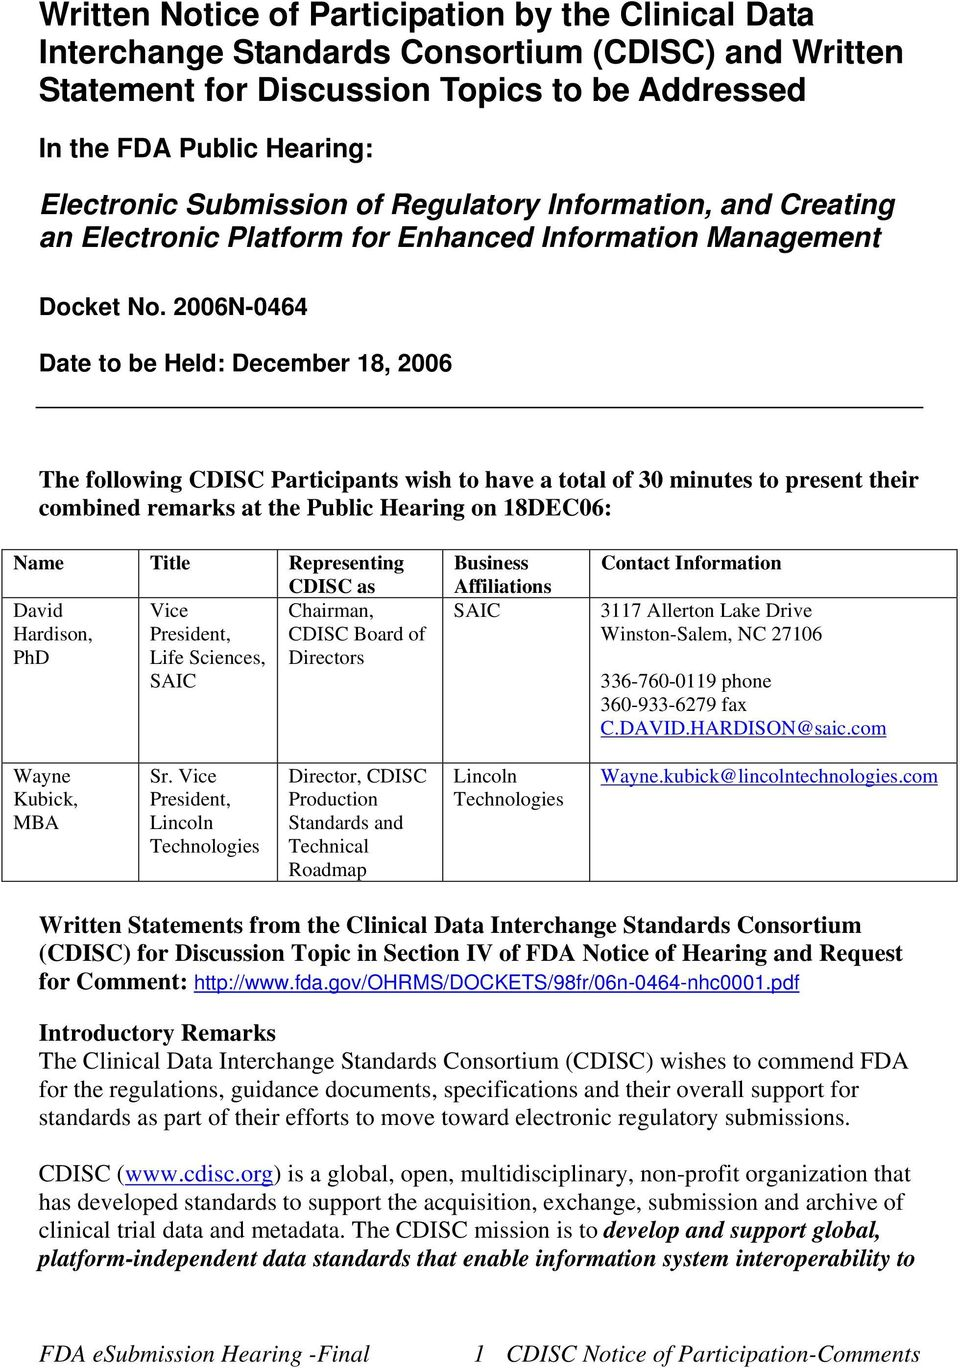 2006N-0464 Date to be Held: December 18, 2006 The following CDISC Participants wish to have a total of 30 minutes to present their combined remarks at the Public Hearing on 18DEC06: Name Title